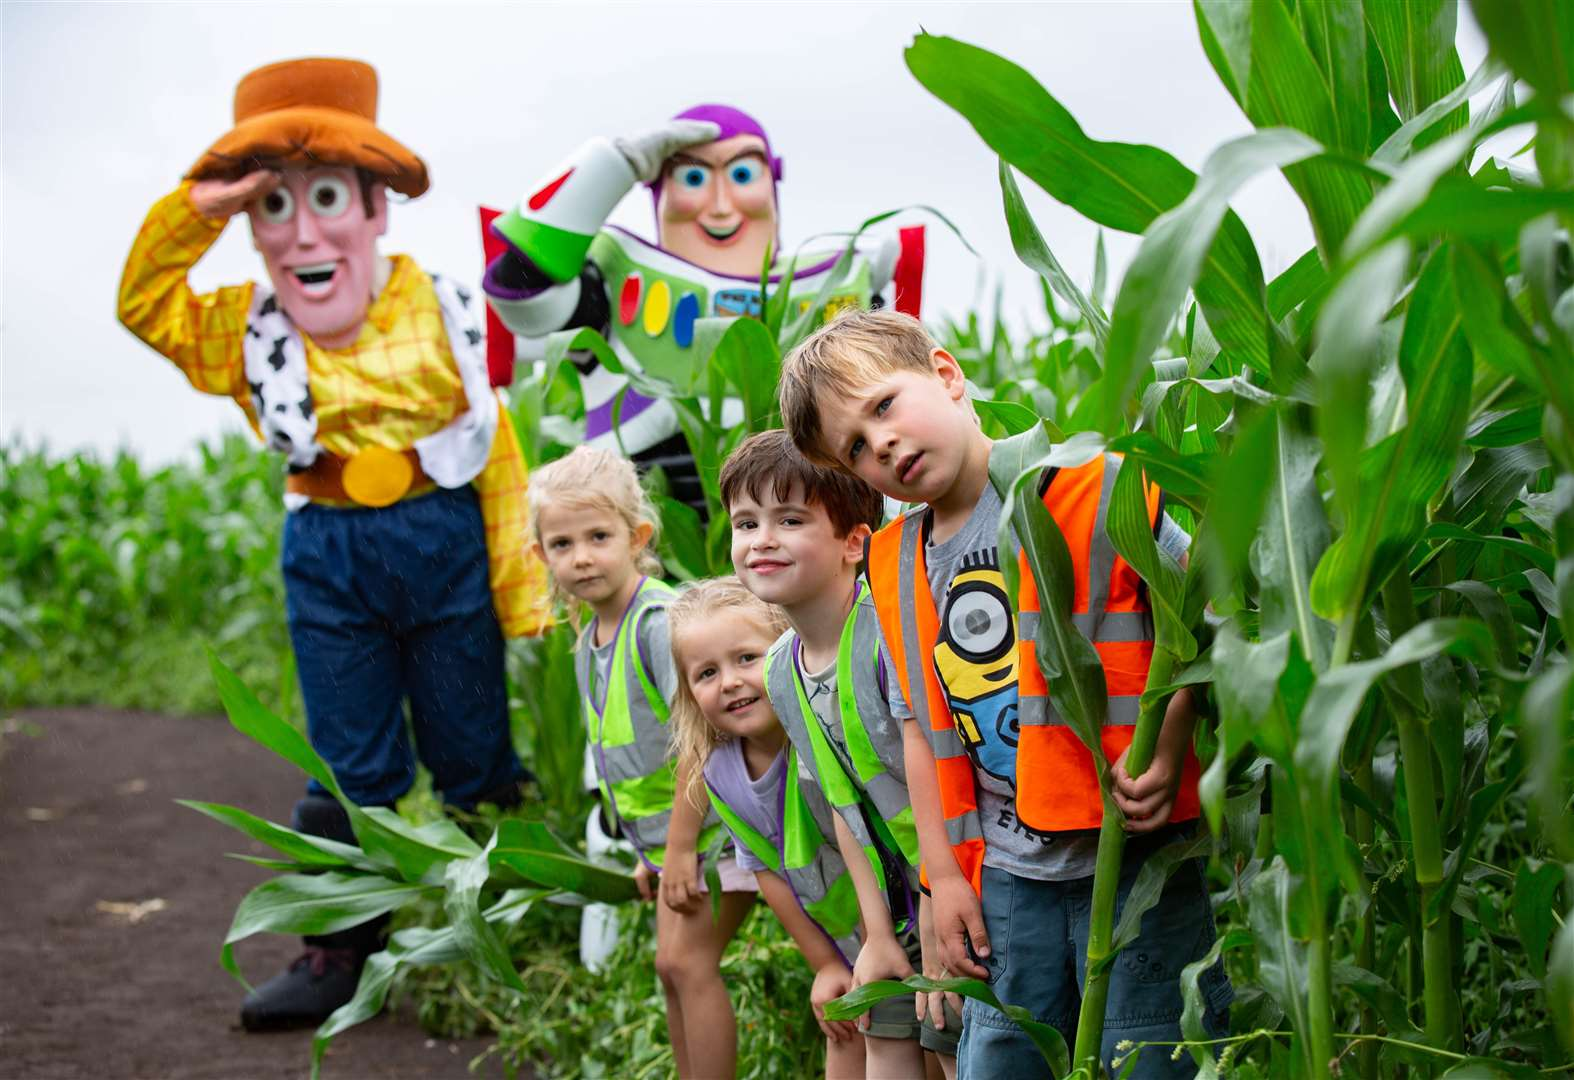 Edenham Pre-School pupils first to visit Toy Story tribute maize maze near March as Buzz Lightyear parachutes in